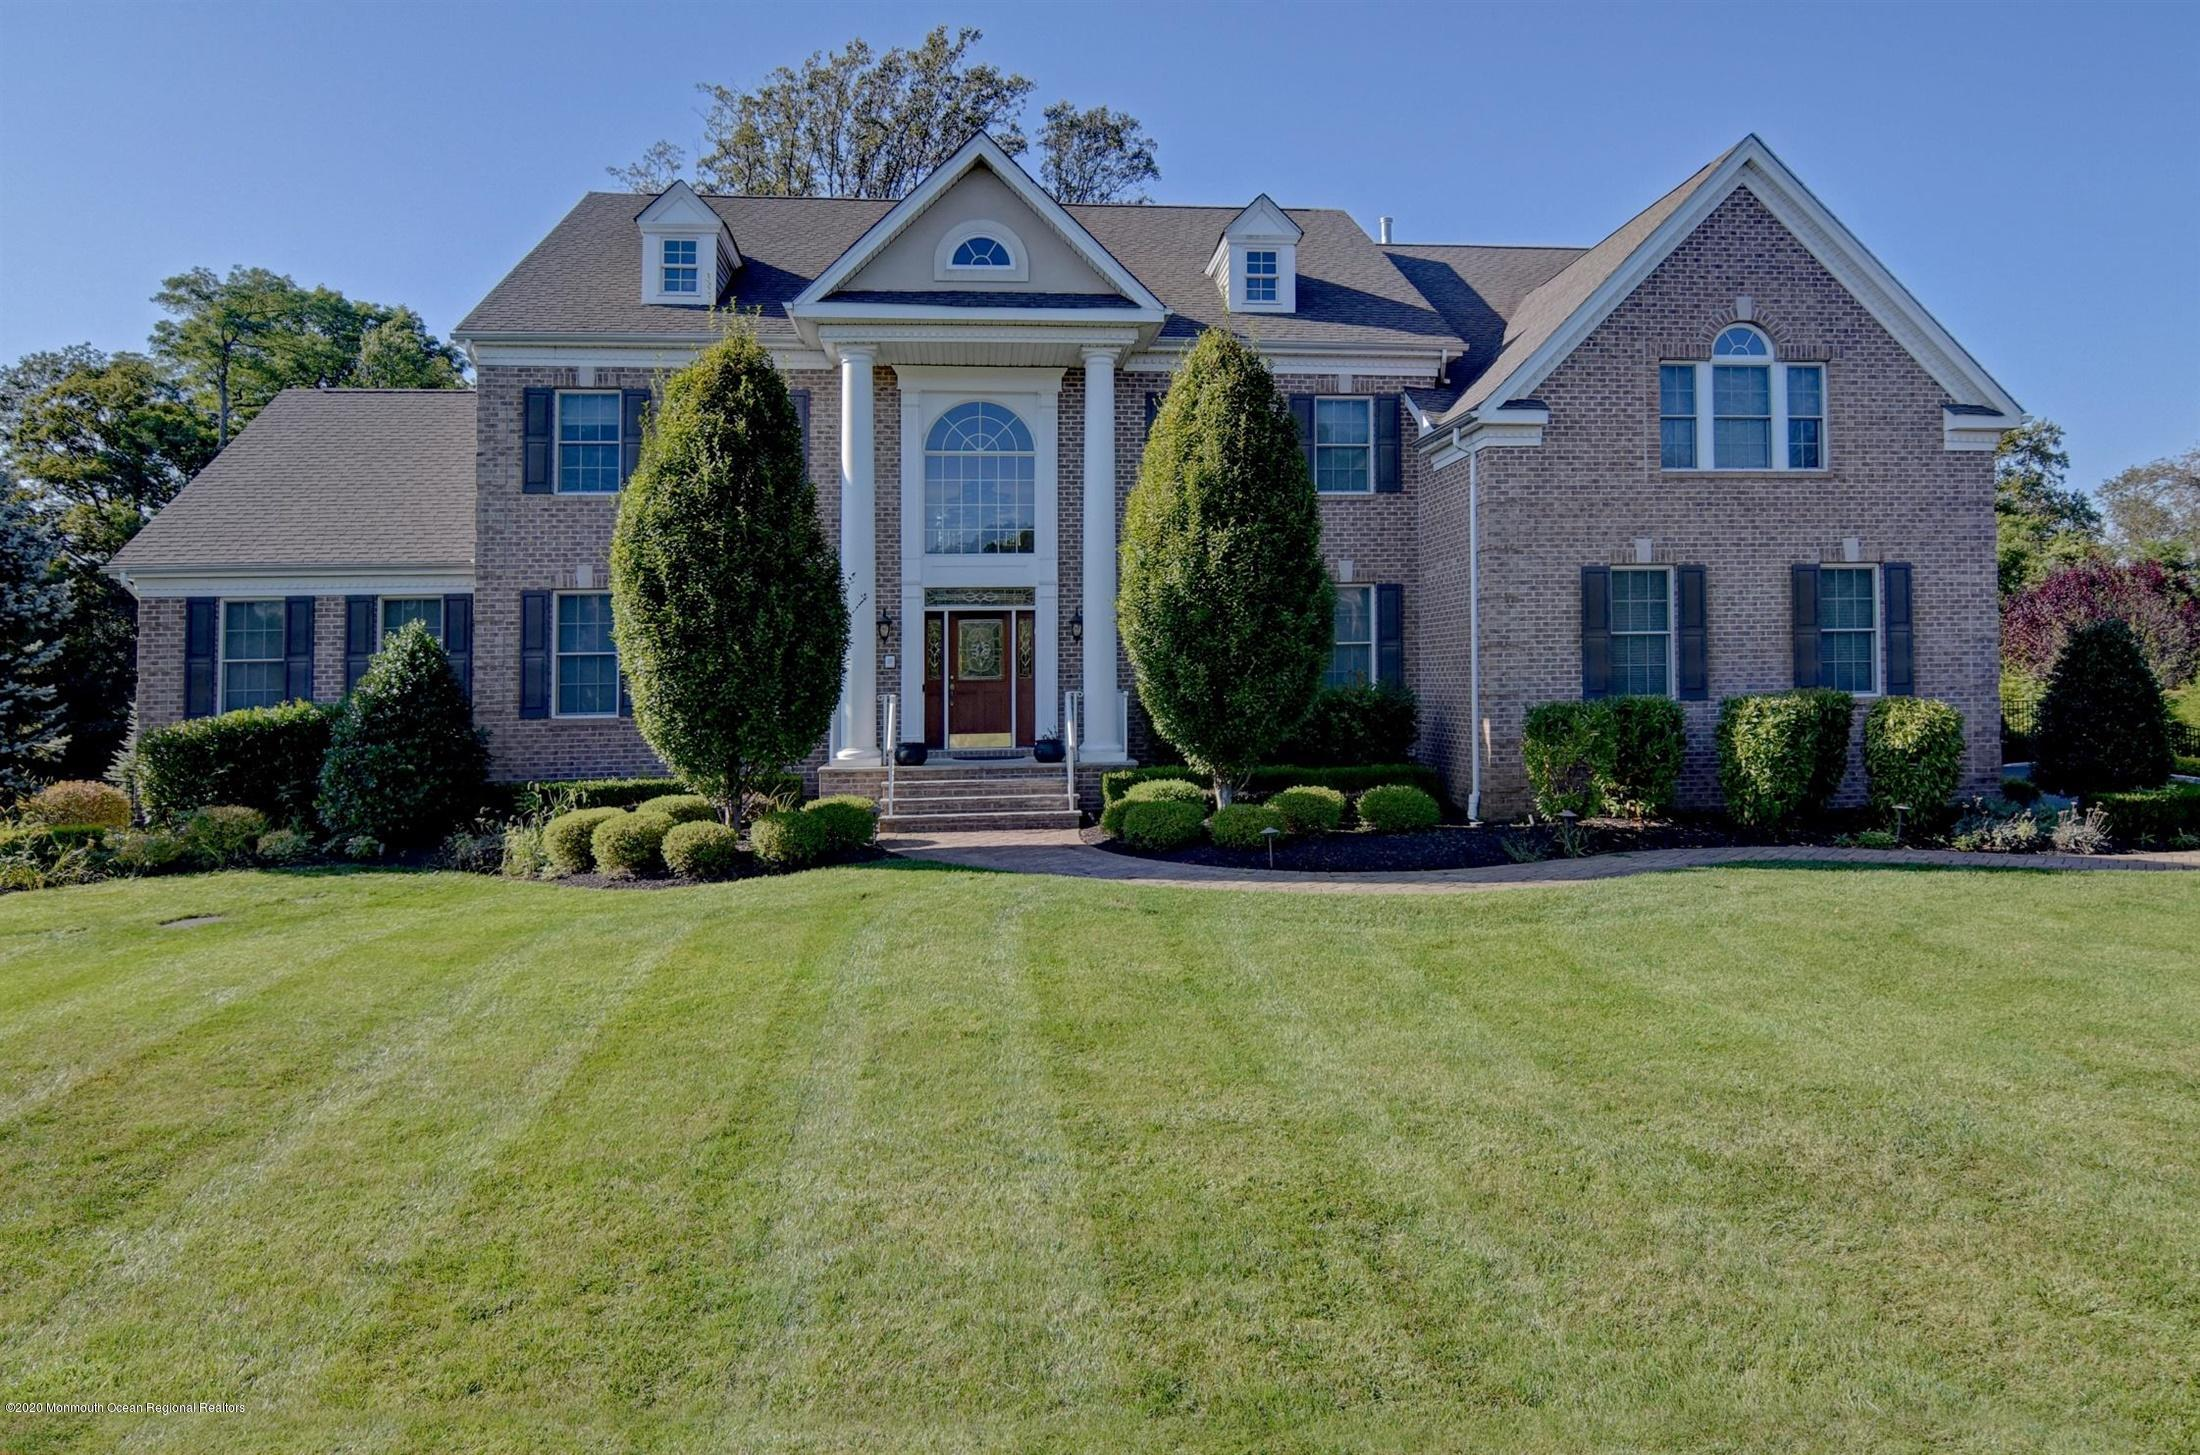 8  Saratoga Court,  Morganville, NJ